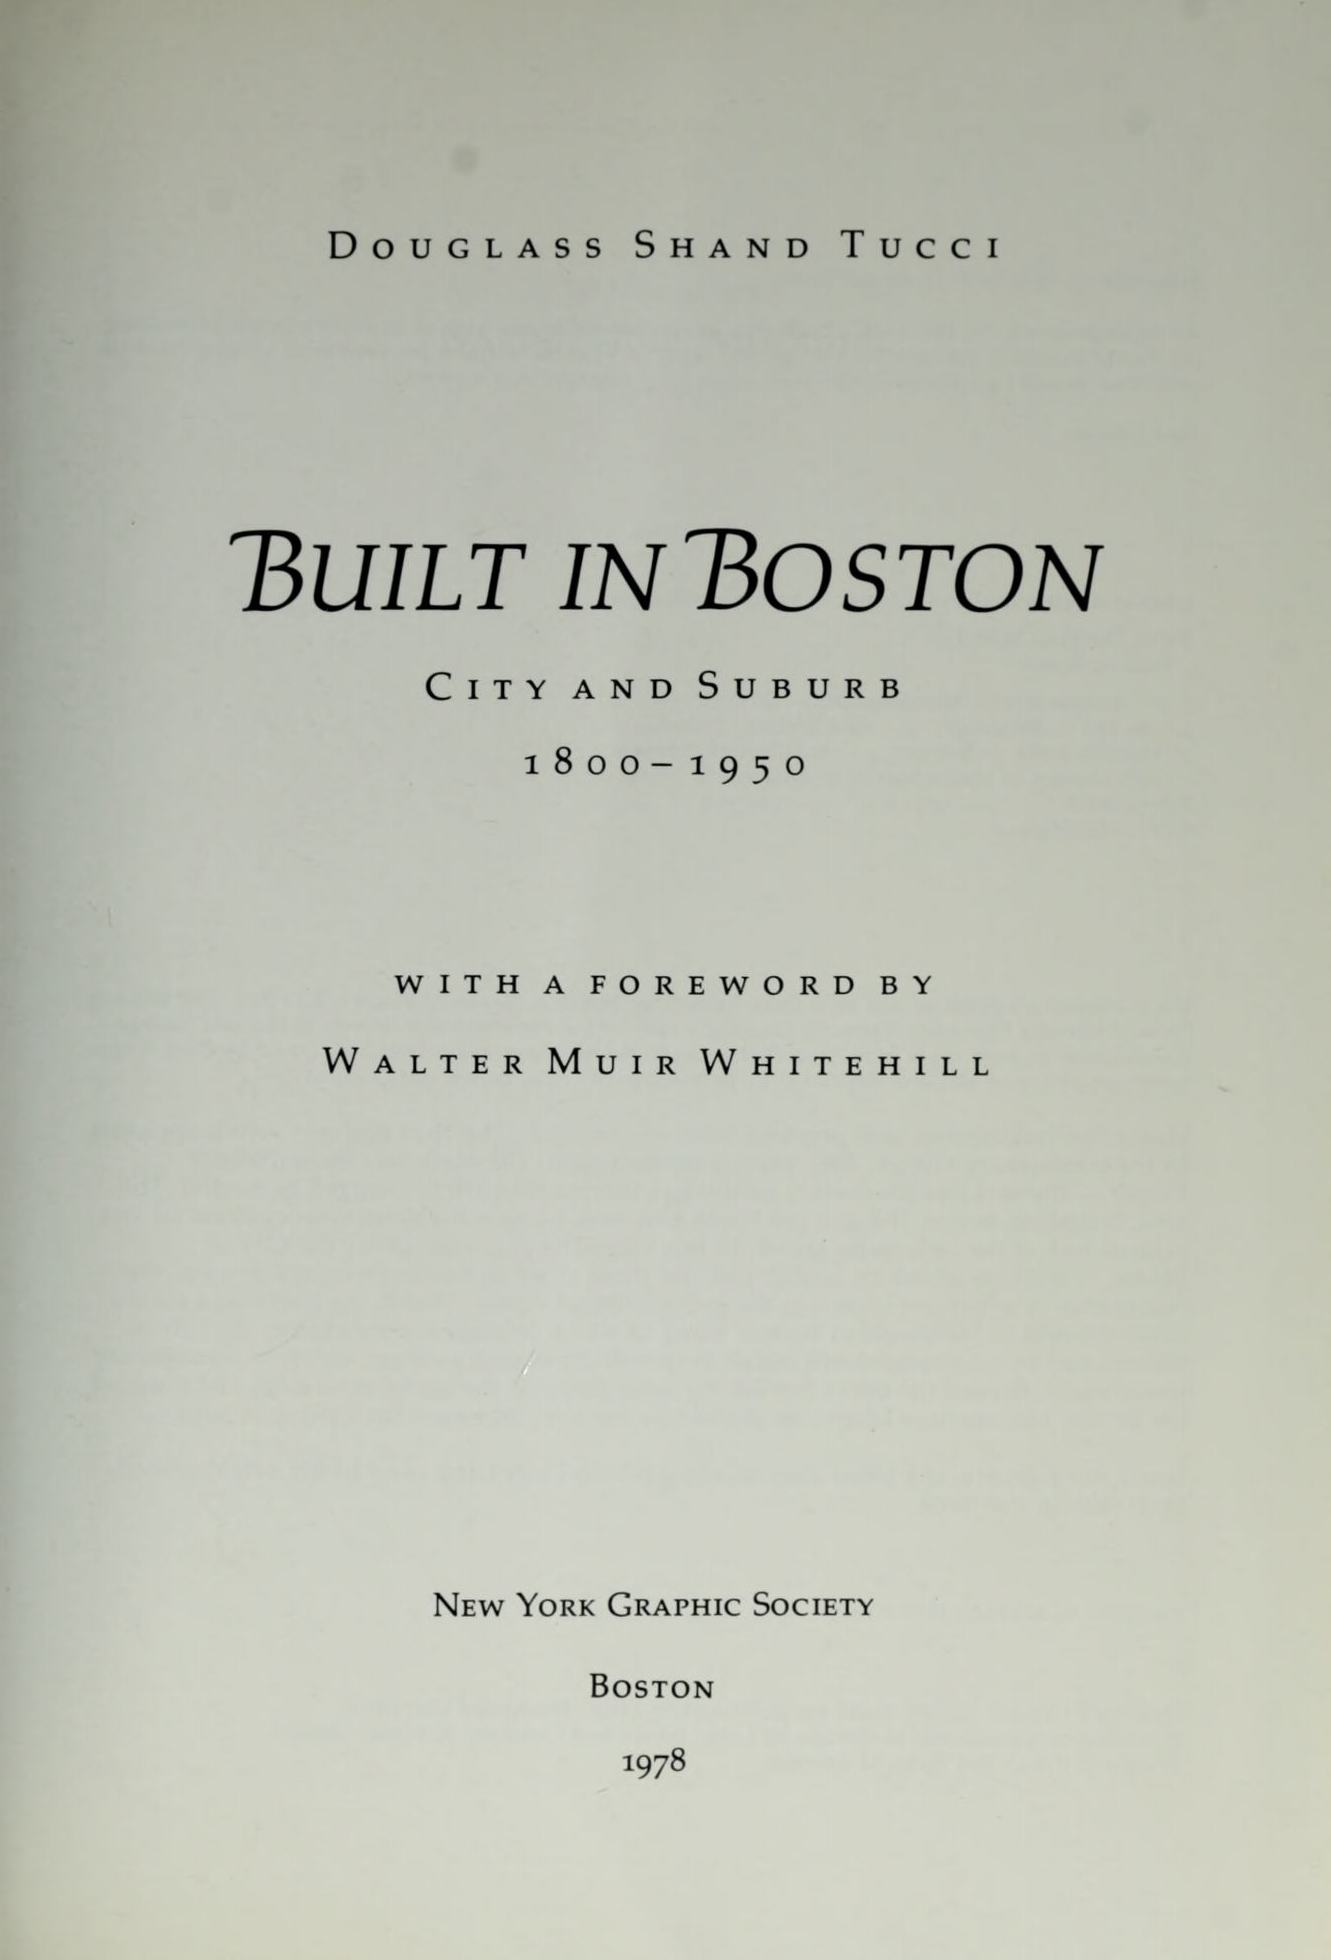 Built in Boston: City and Suburb. 1800—1950 / Douglass Shand Tucci ; With a foreword by Walter Muir Whitehill. — Boston : New York Graphic Society, 1978